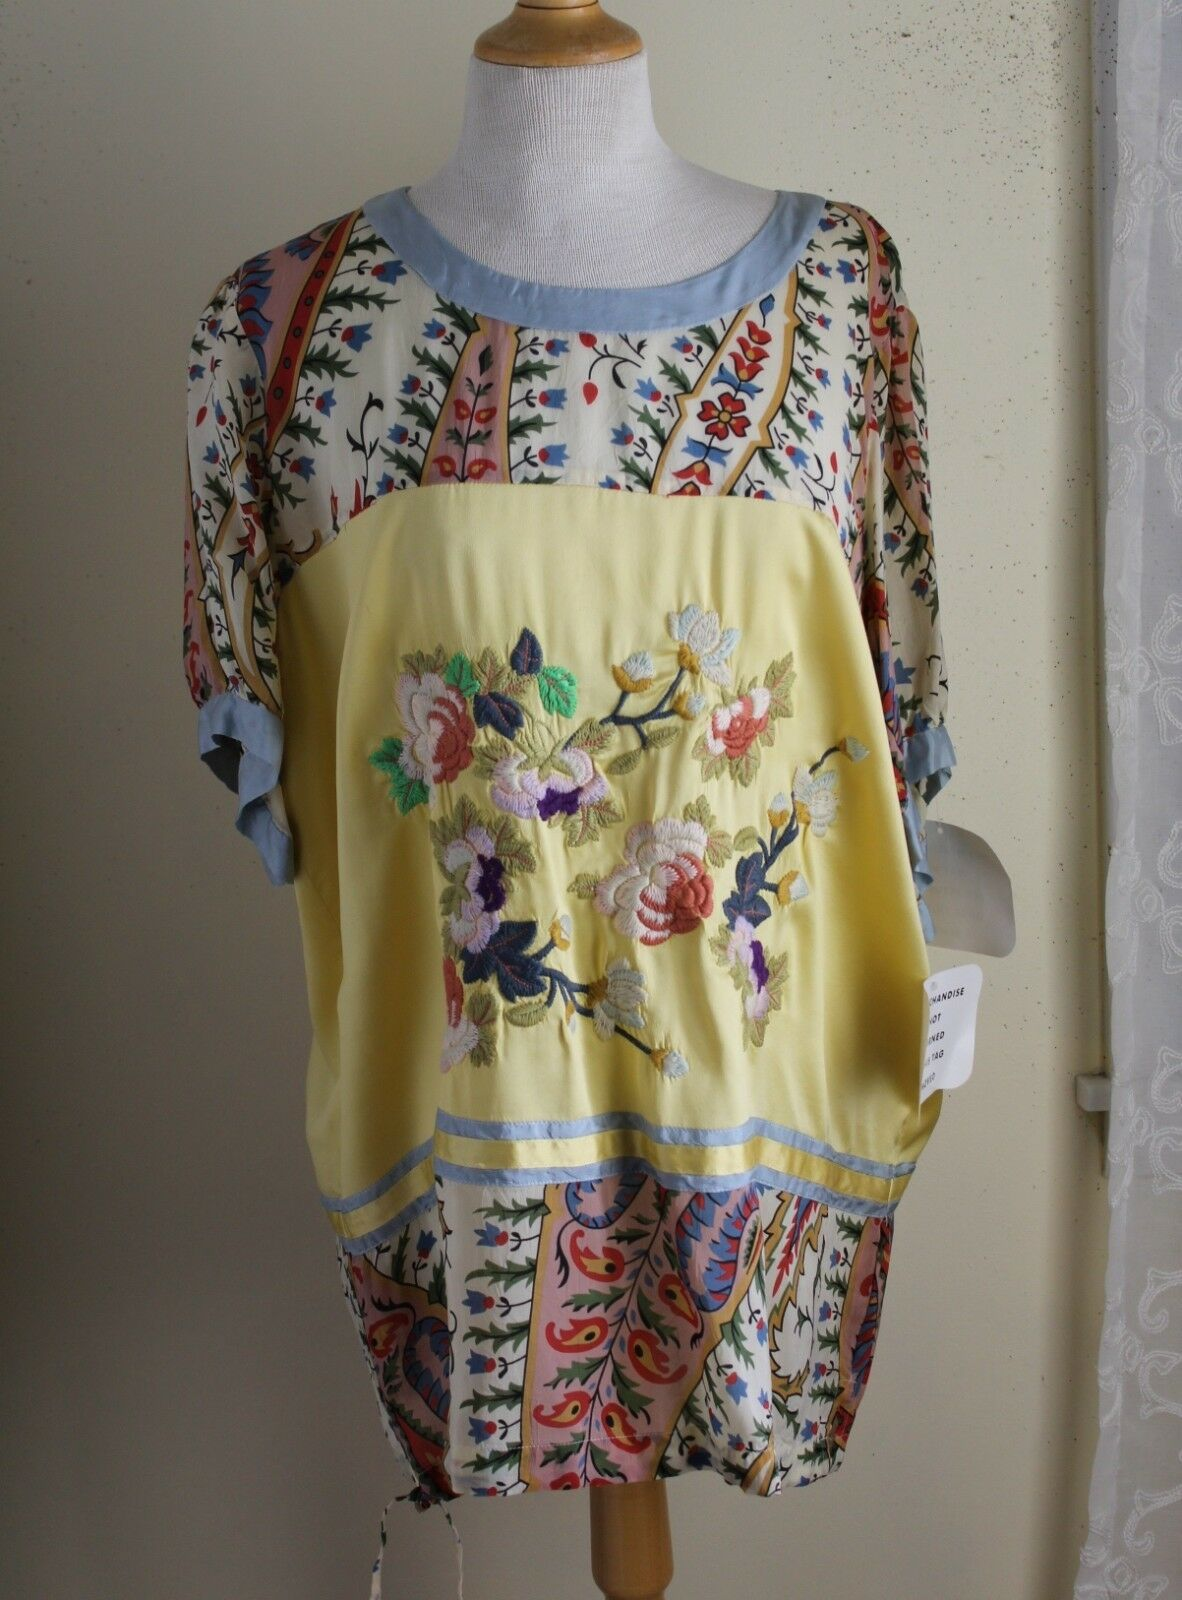 NWT Johnny Was Sz XL SOLD OUT Asian Rich Embroiderot Tunic Shirt Top UNREAL